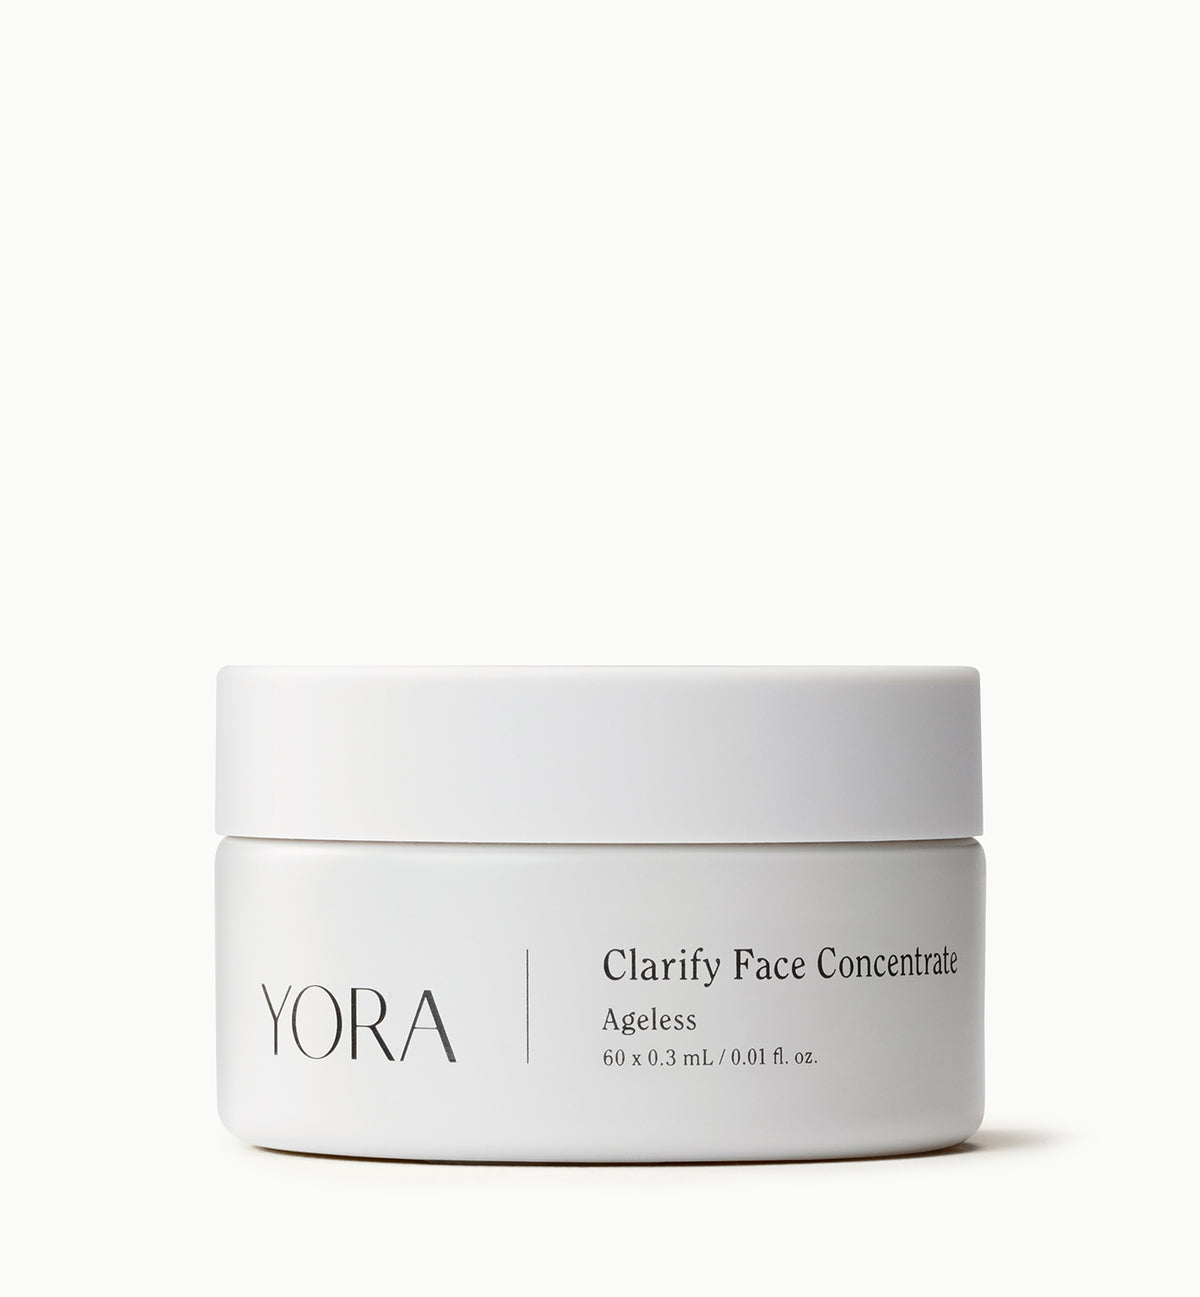 Clarify Face Concentrate